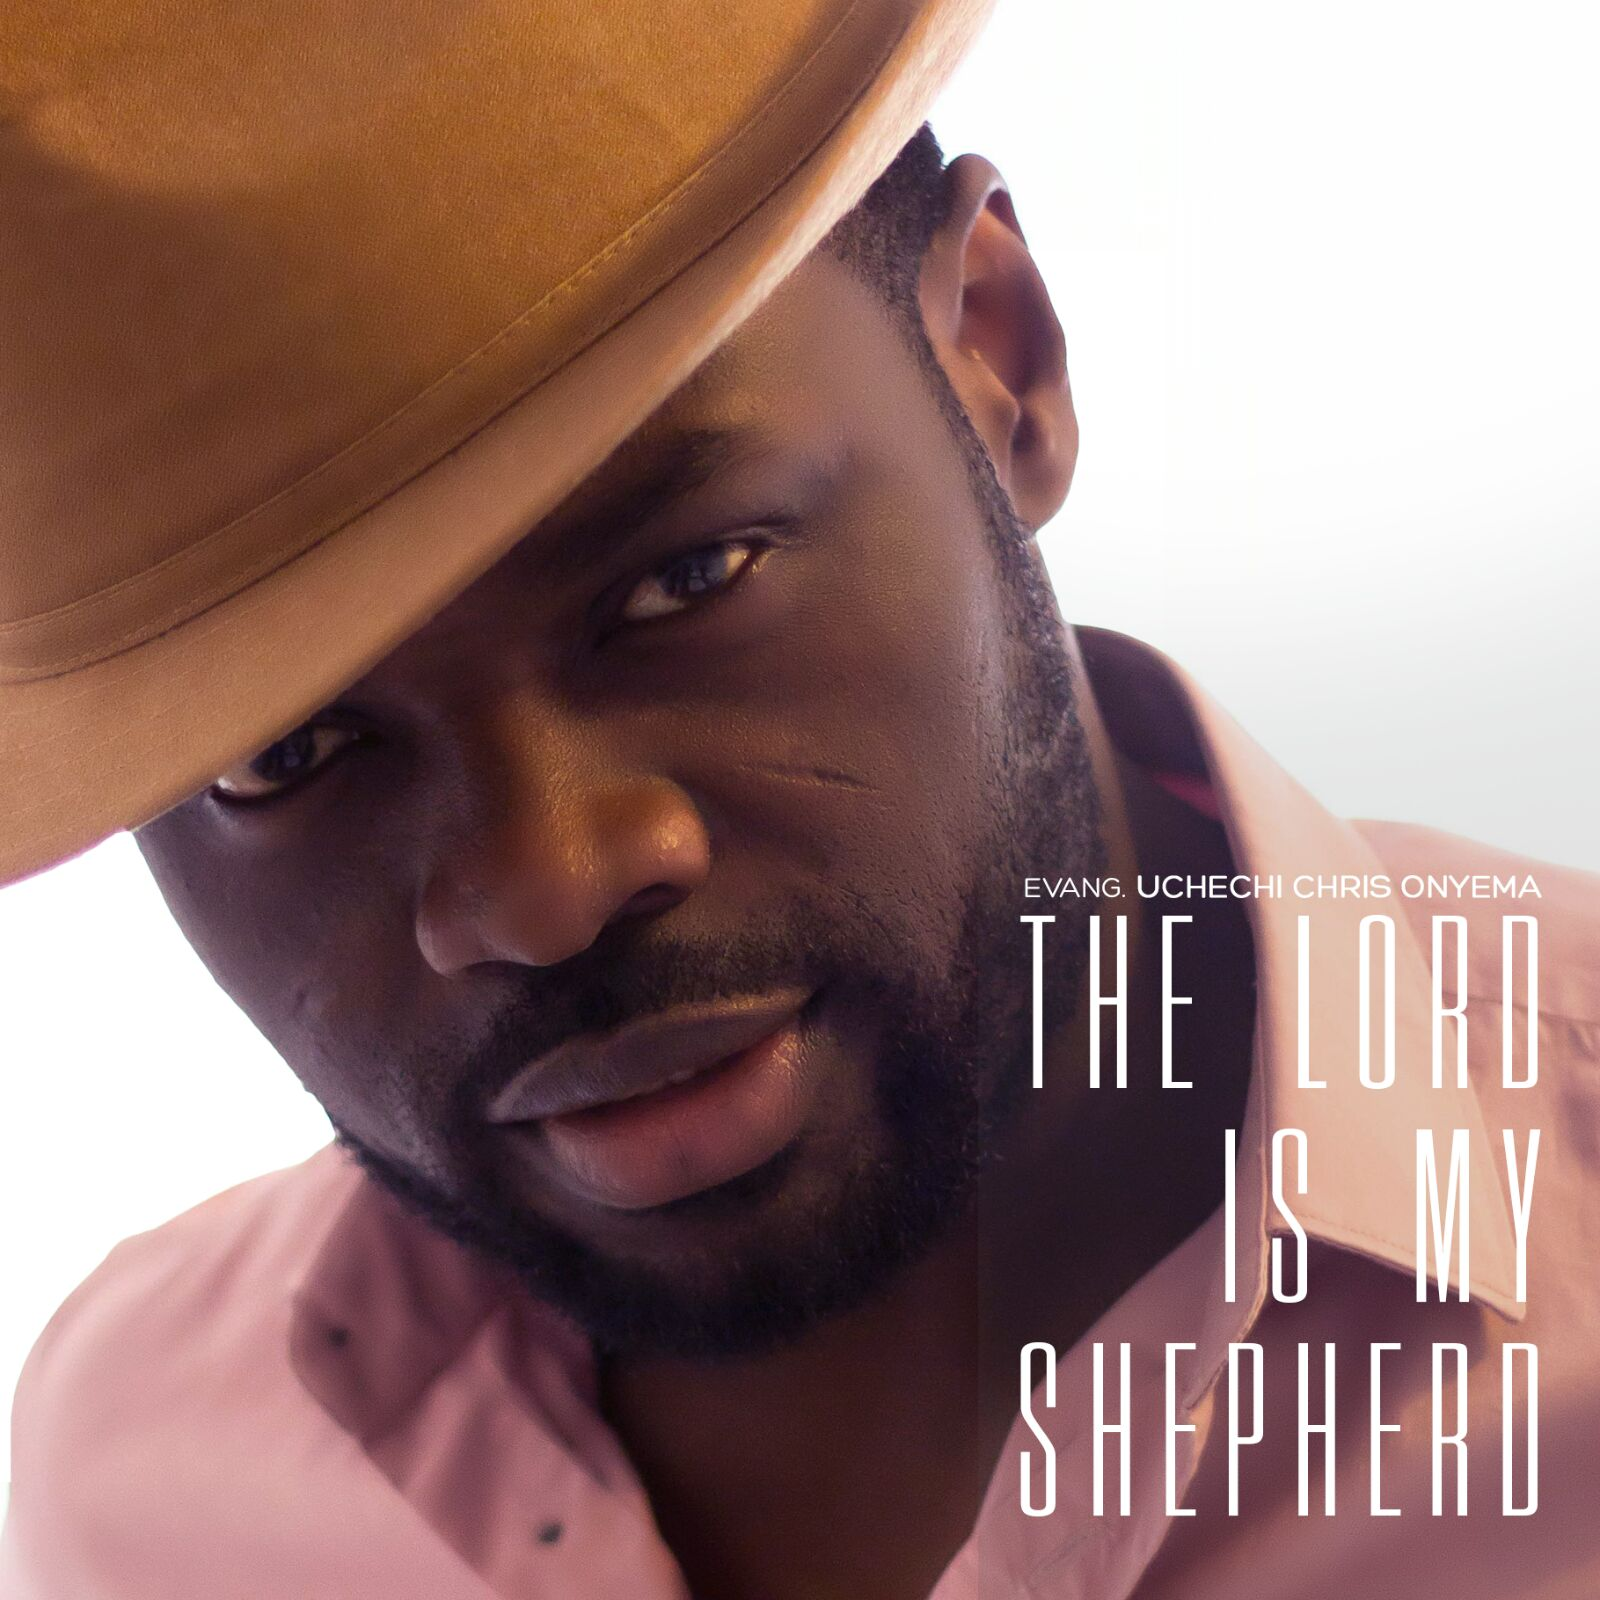 Evang. Uche M.O.G: The Lord Is My Shepherd |Official Audio| DOWNLOAD MP3 @Uchechrimog